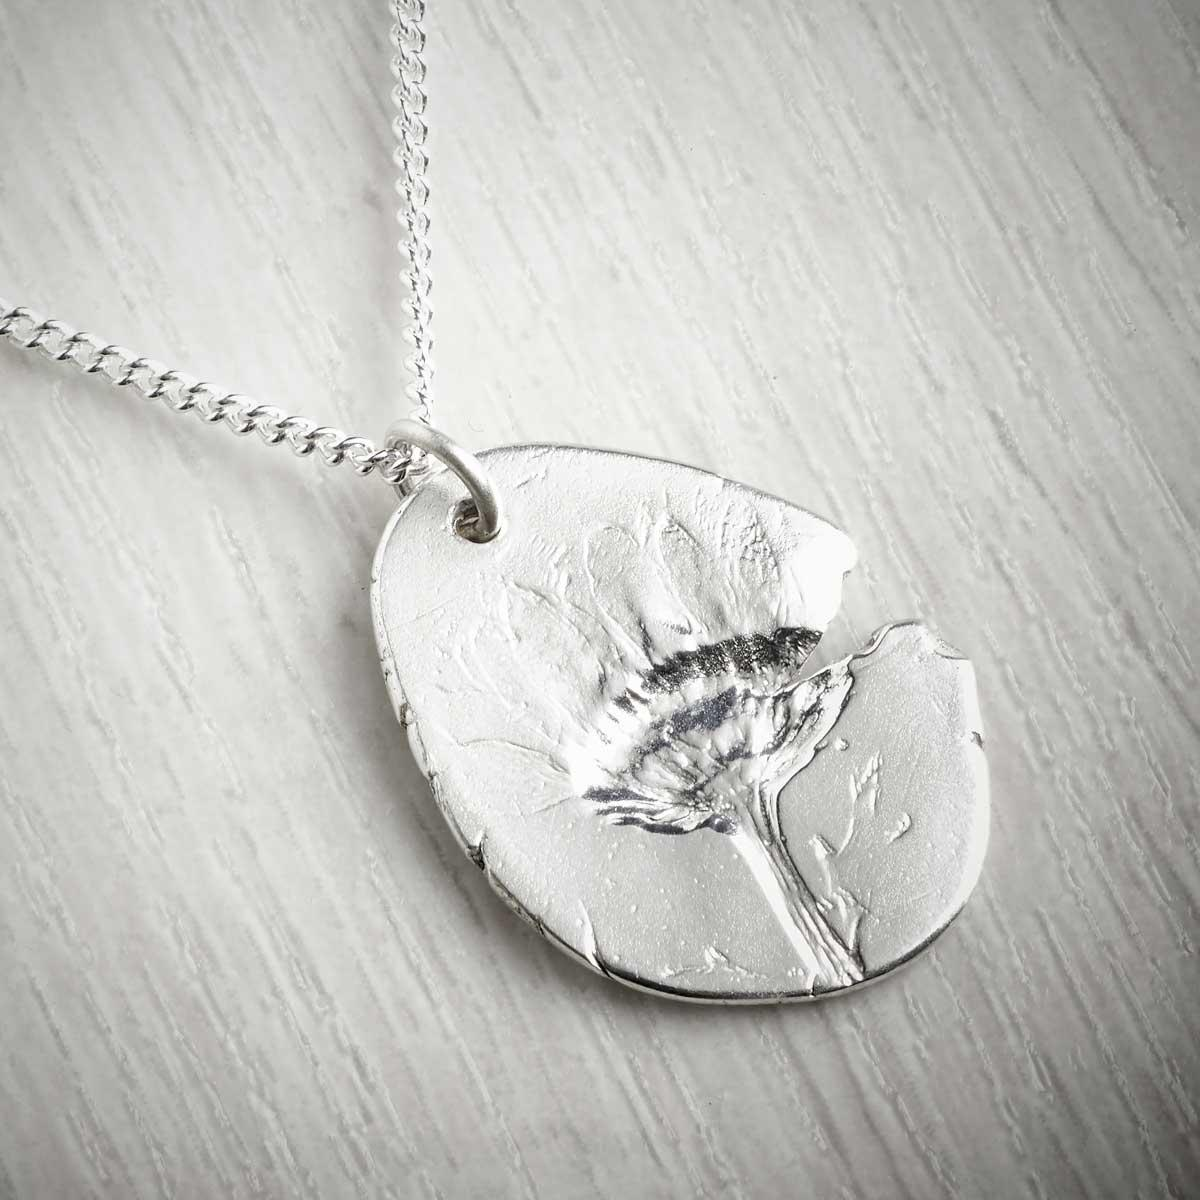 Chrysanthemum November Fossil Pendant by Becca Macdonald. Image property of THE JEWELLERY MAKERS.